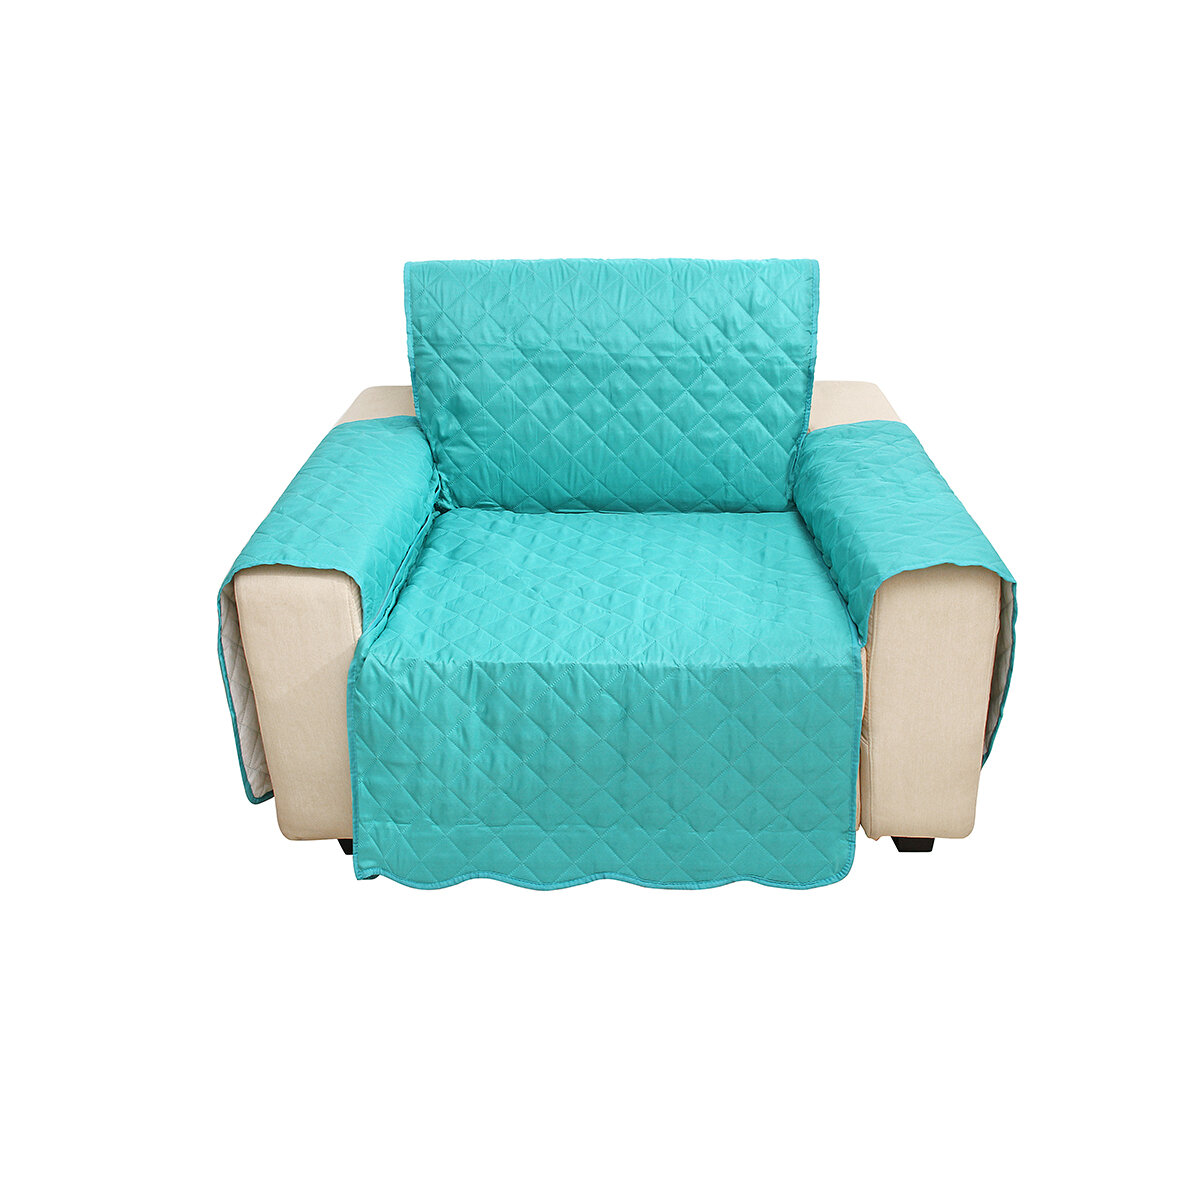 Terrific Single Seat Sofa Cover Living Room Home Decoration Polyester Fashion Dust Proof Chair Covers Caraccident5 Cool Chair Designs And Ideas Caraccident5Info